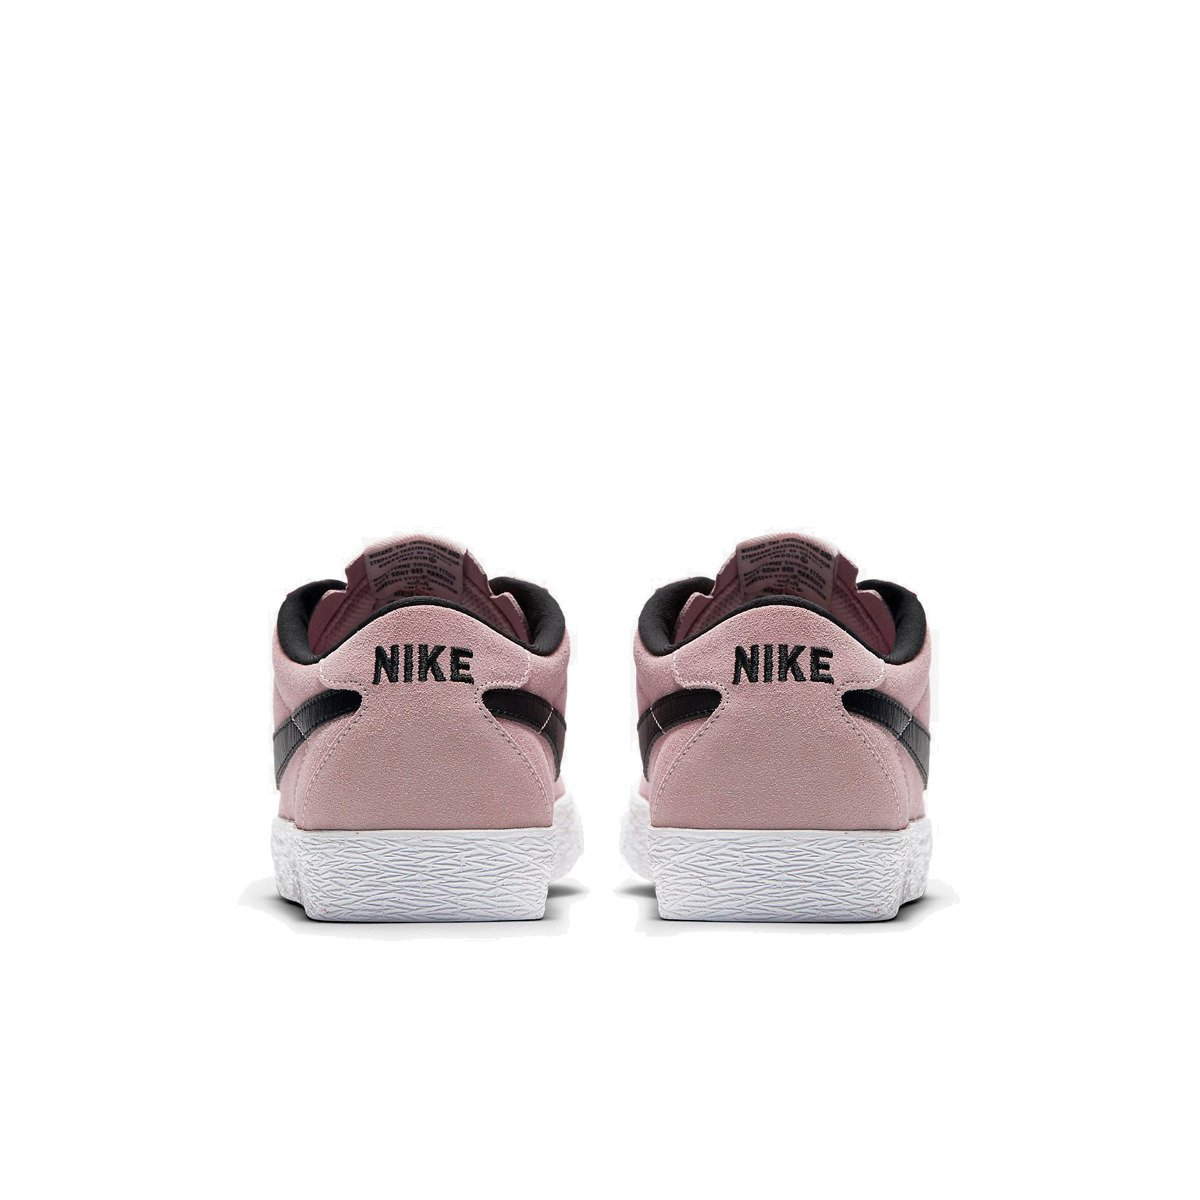 separation shoes 48712 443a8 ... shoes nike sb bruin premium se prism pink black-white Click to zoom ...